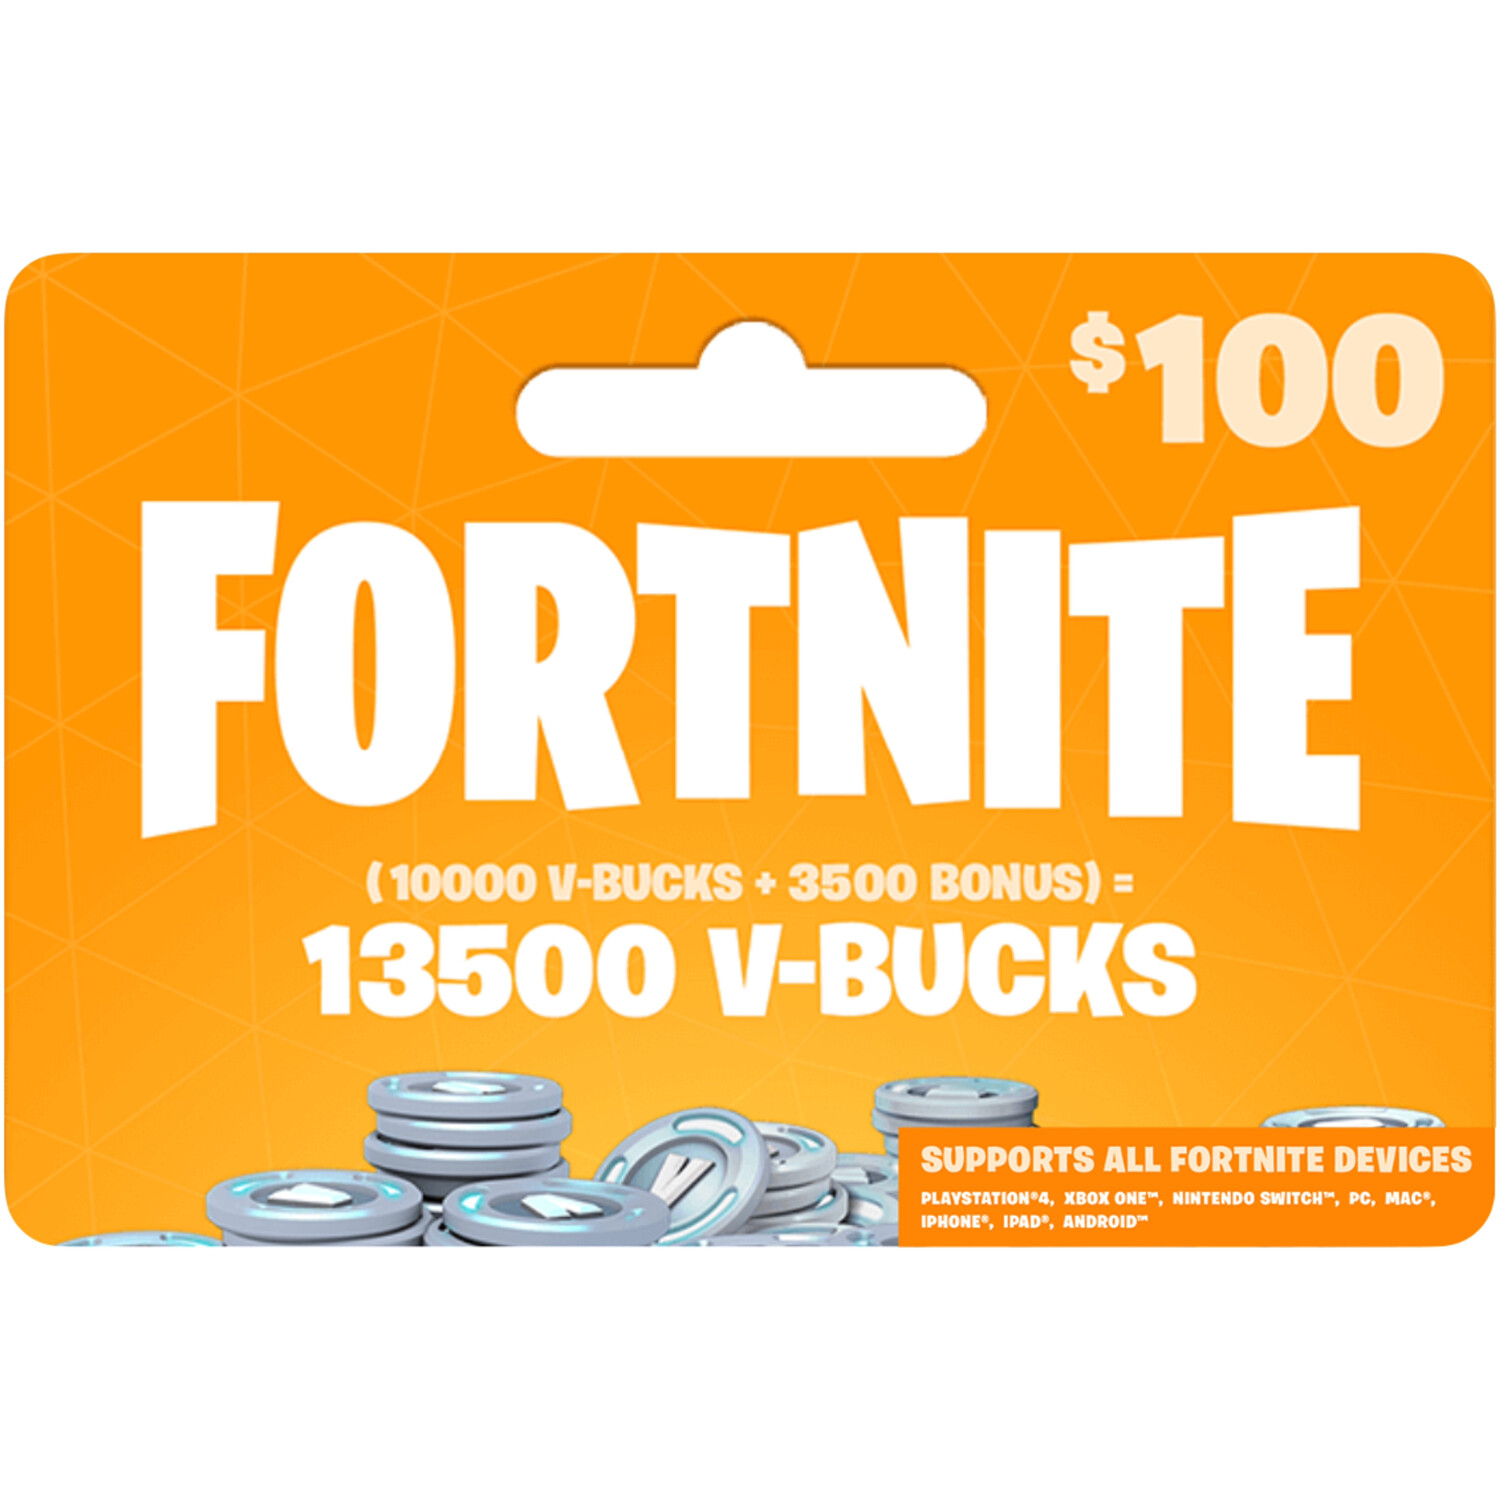 Fortnite 13500 VBucks $100 for All Devices Global